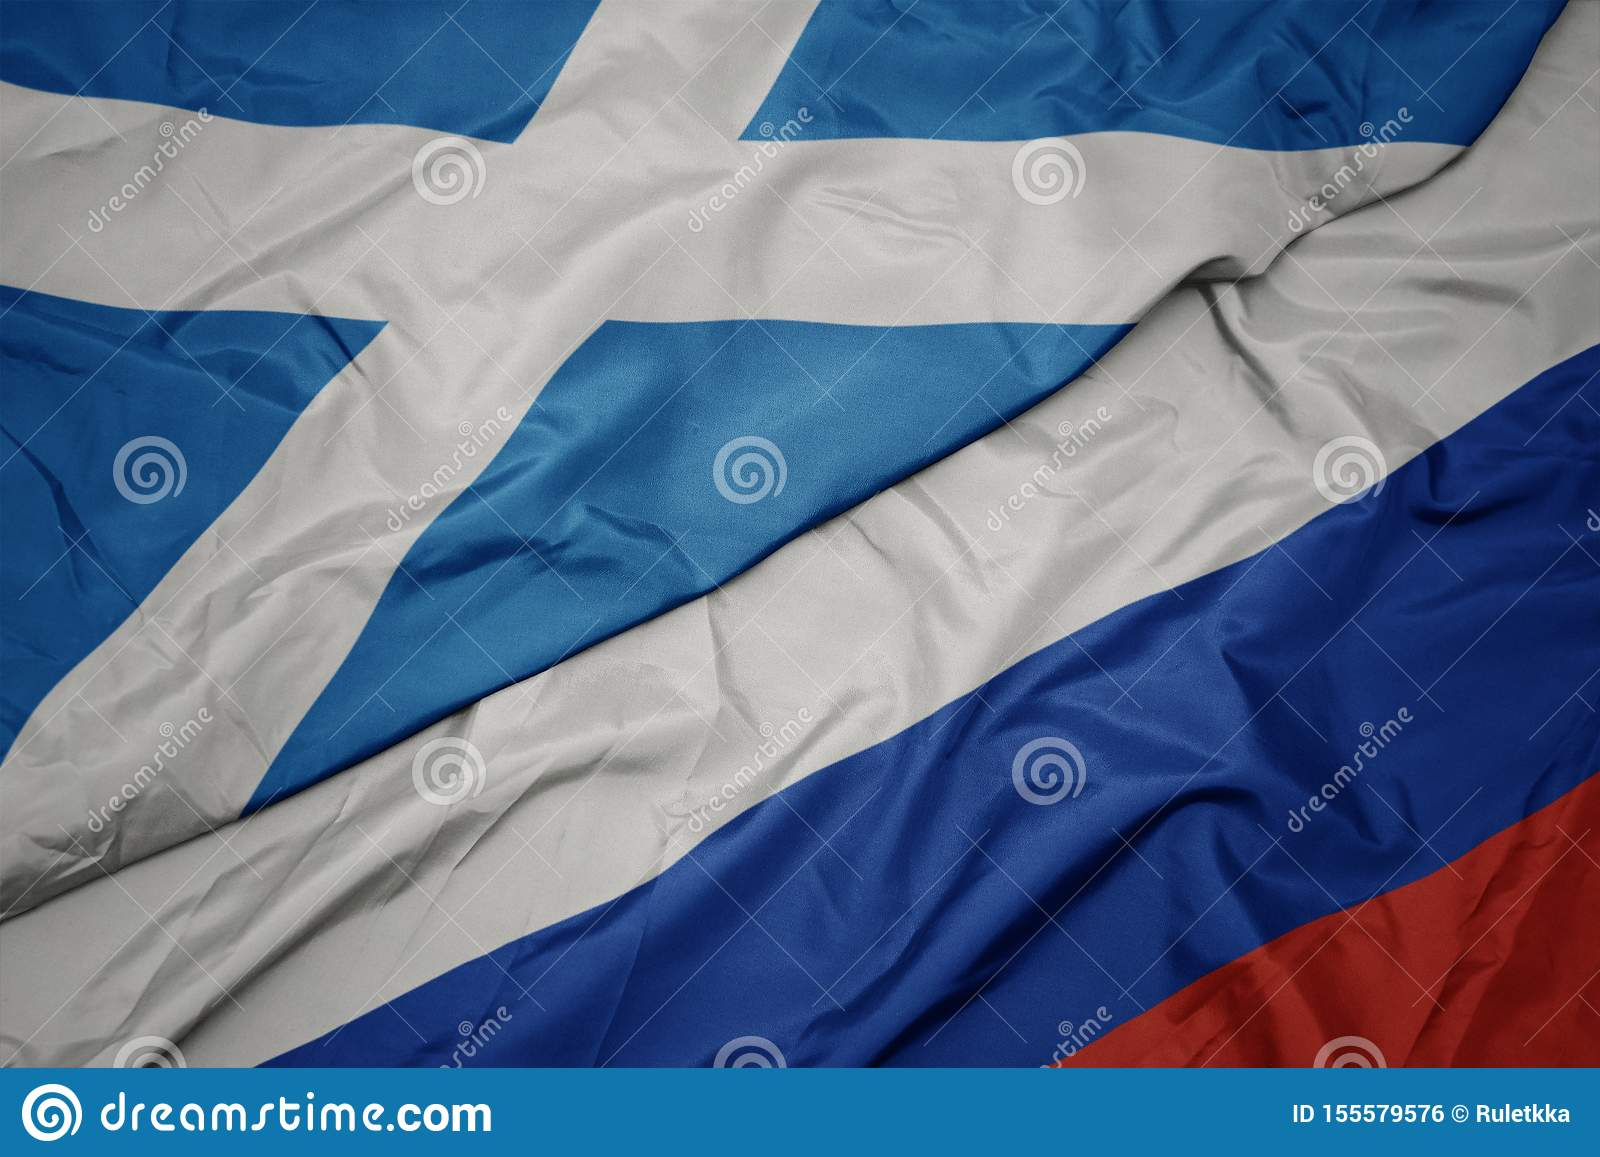 waving colorful flag of russia and national flag of scotland